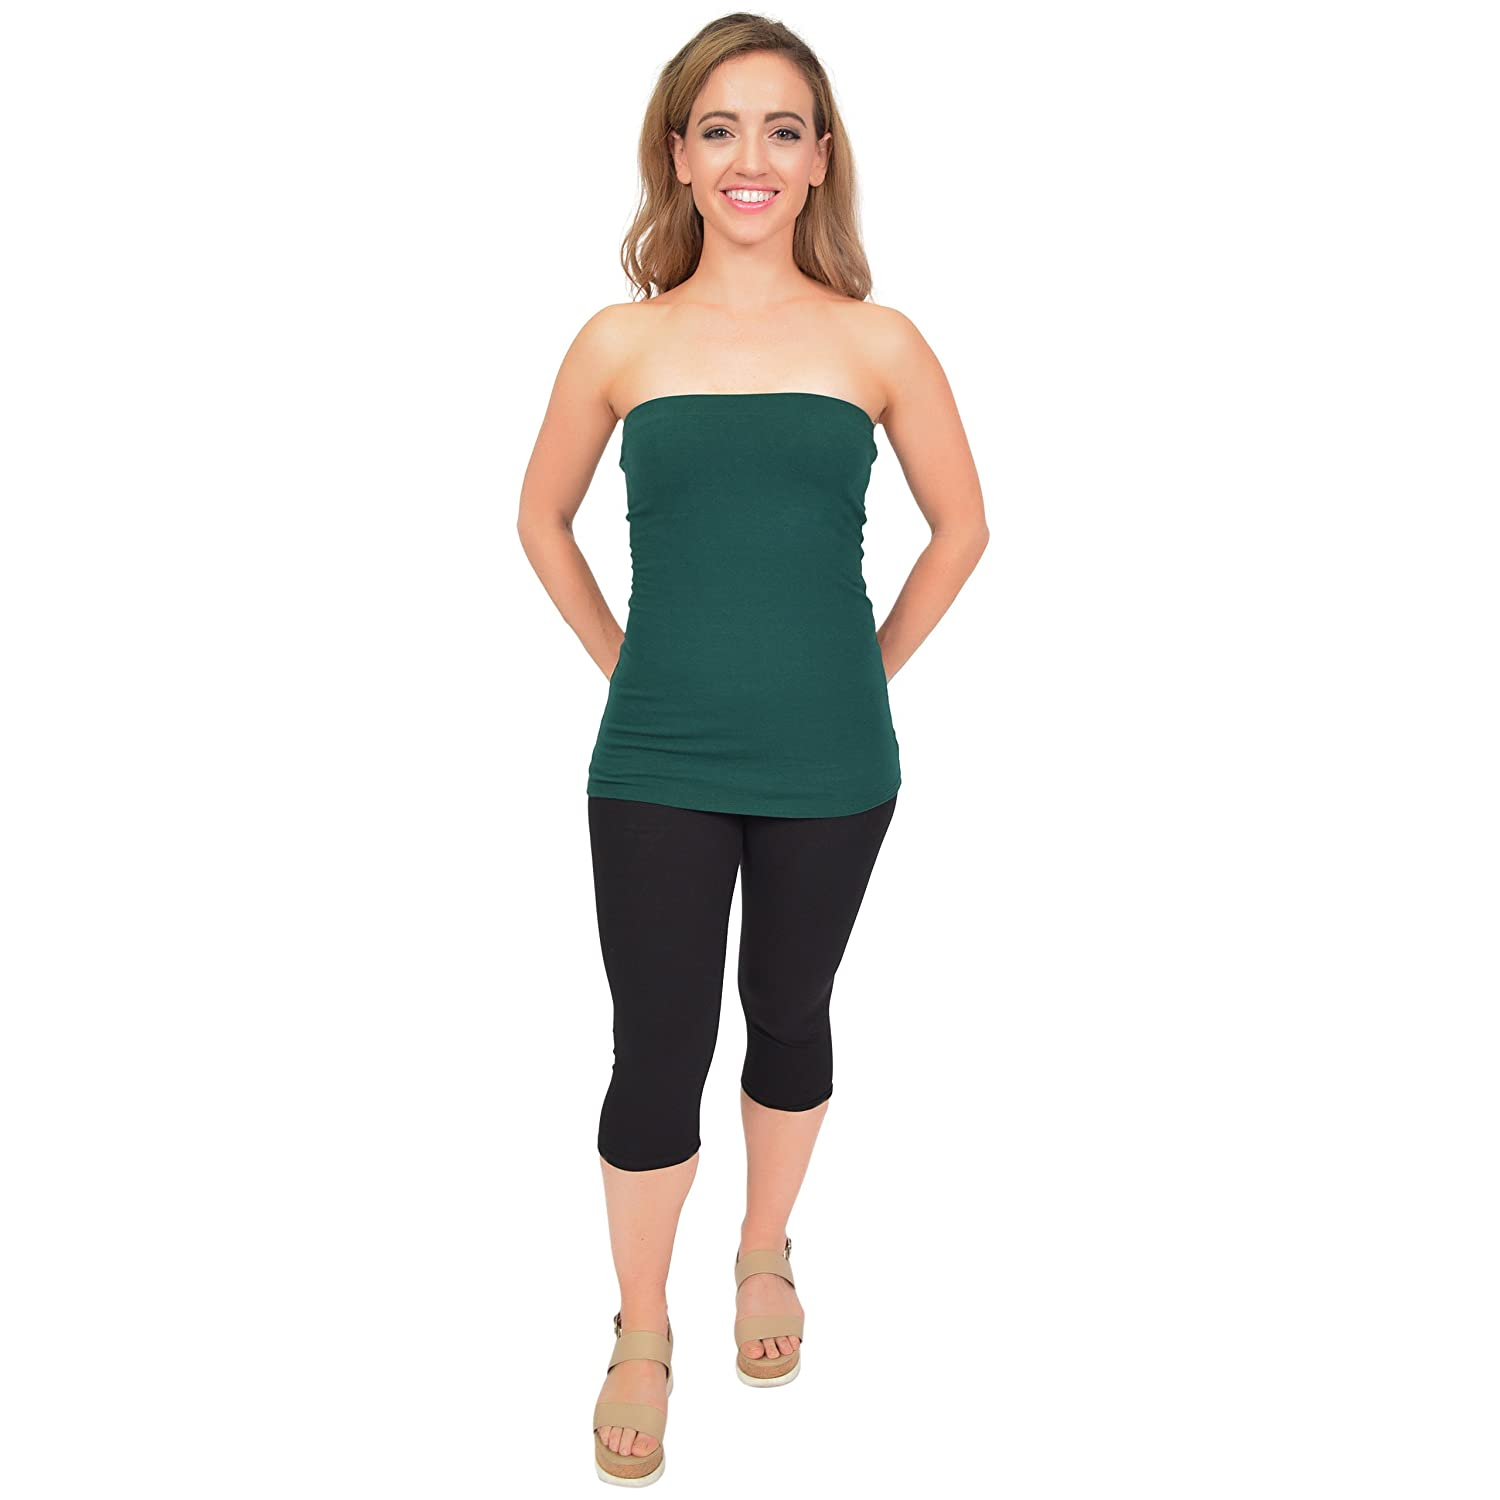 0292dae740 Stretch is Comfort Women s Cotton Strapless Tube Top at Amazon Women s  Clothing store